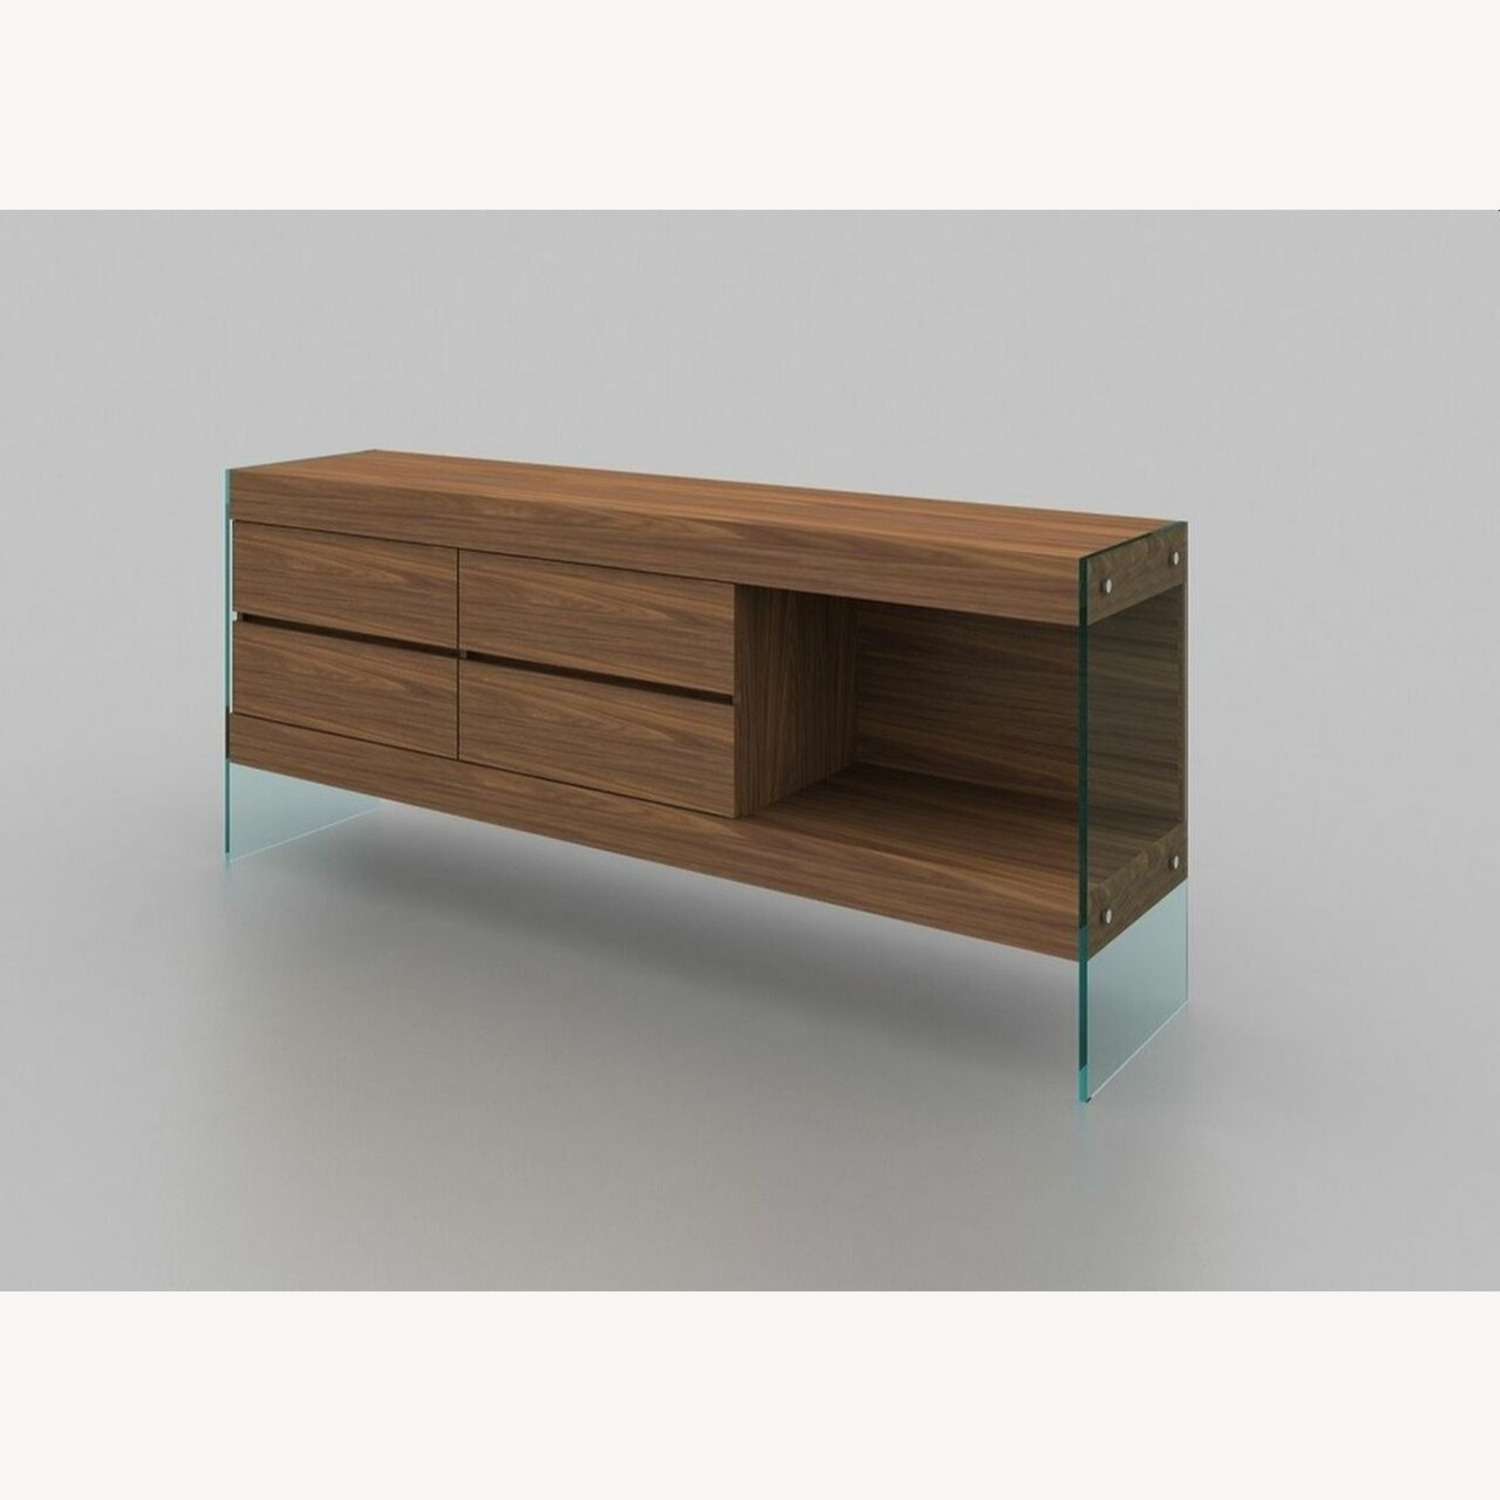 Buffet Crafted In Walnut Matte Finish W/ 4 Drawers - image-2